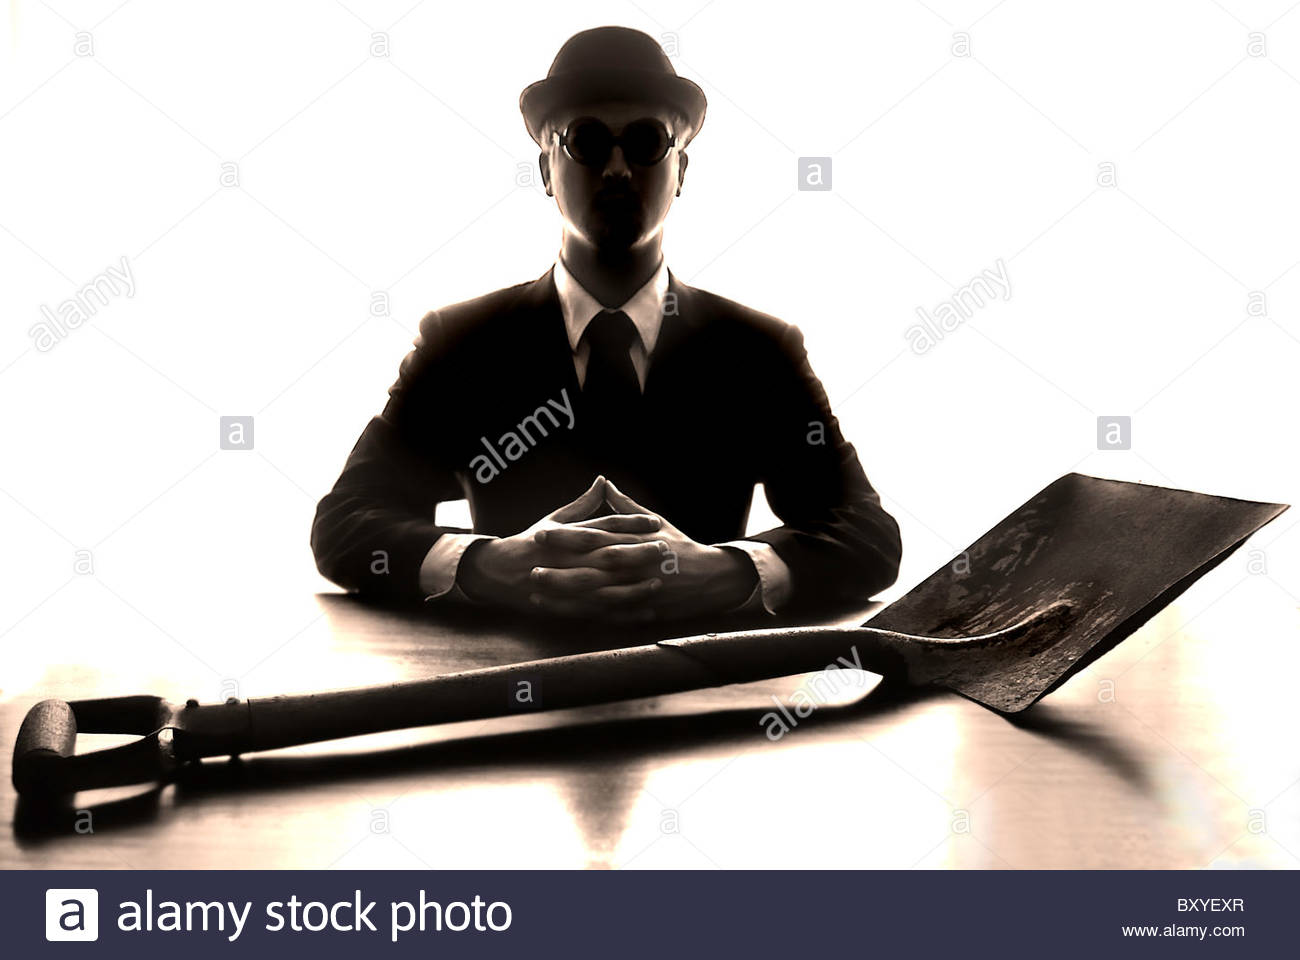 Silhouette of male figure wearing a business suit and hat sitting behind desk with spade - Stock Image